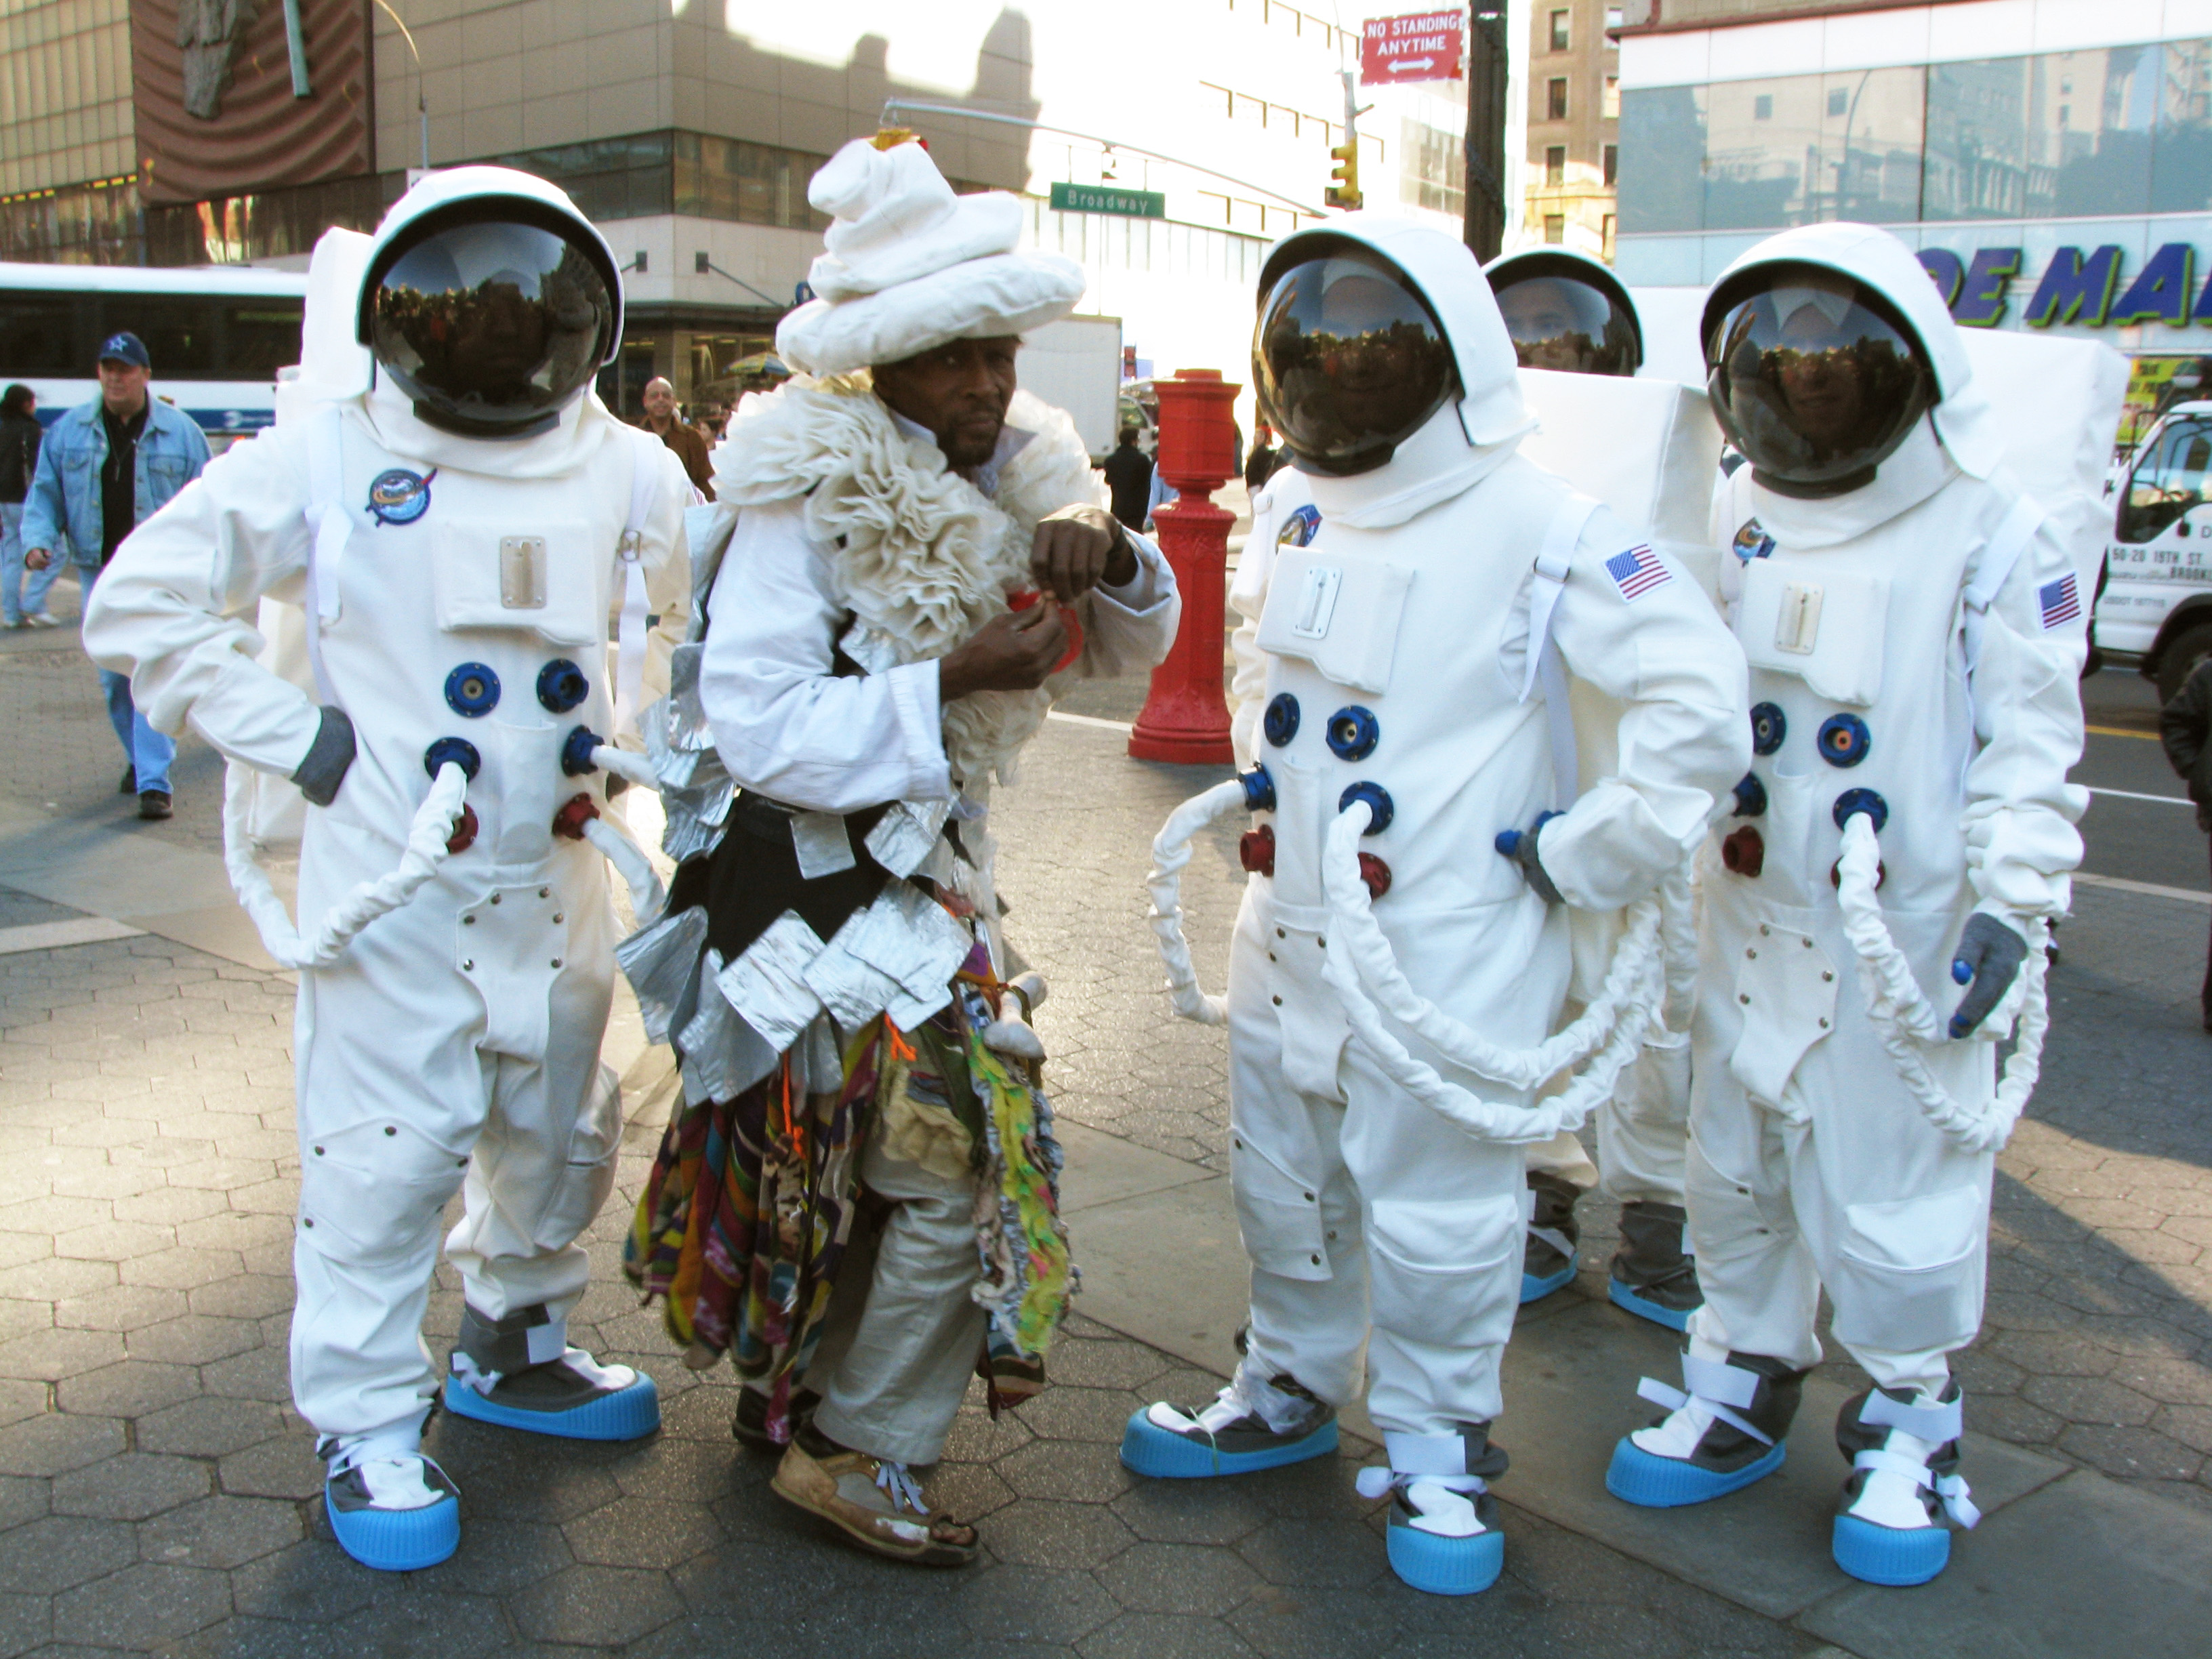 Wendell Headley poses with Astronauts